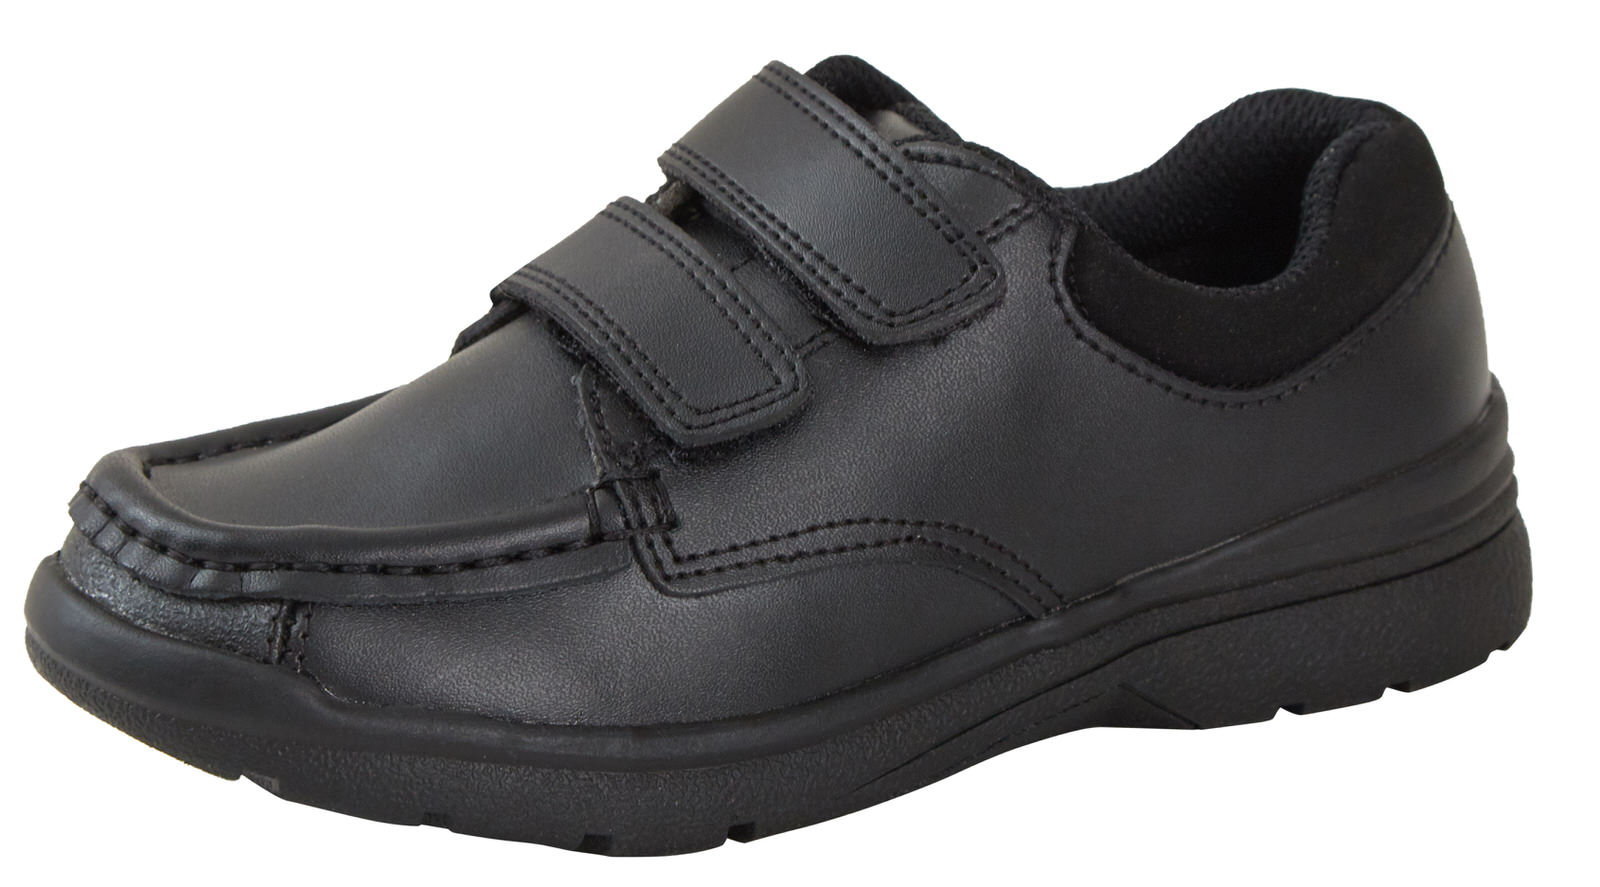 Boys Leather School Shoes Scuff